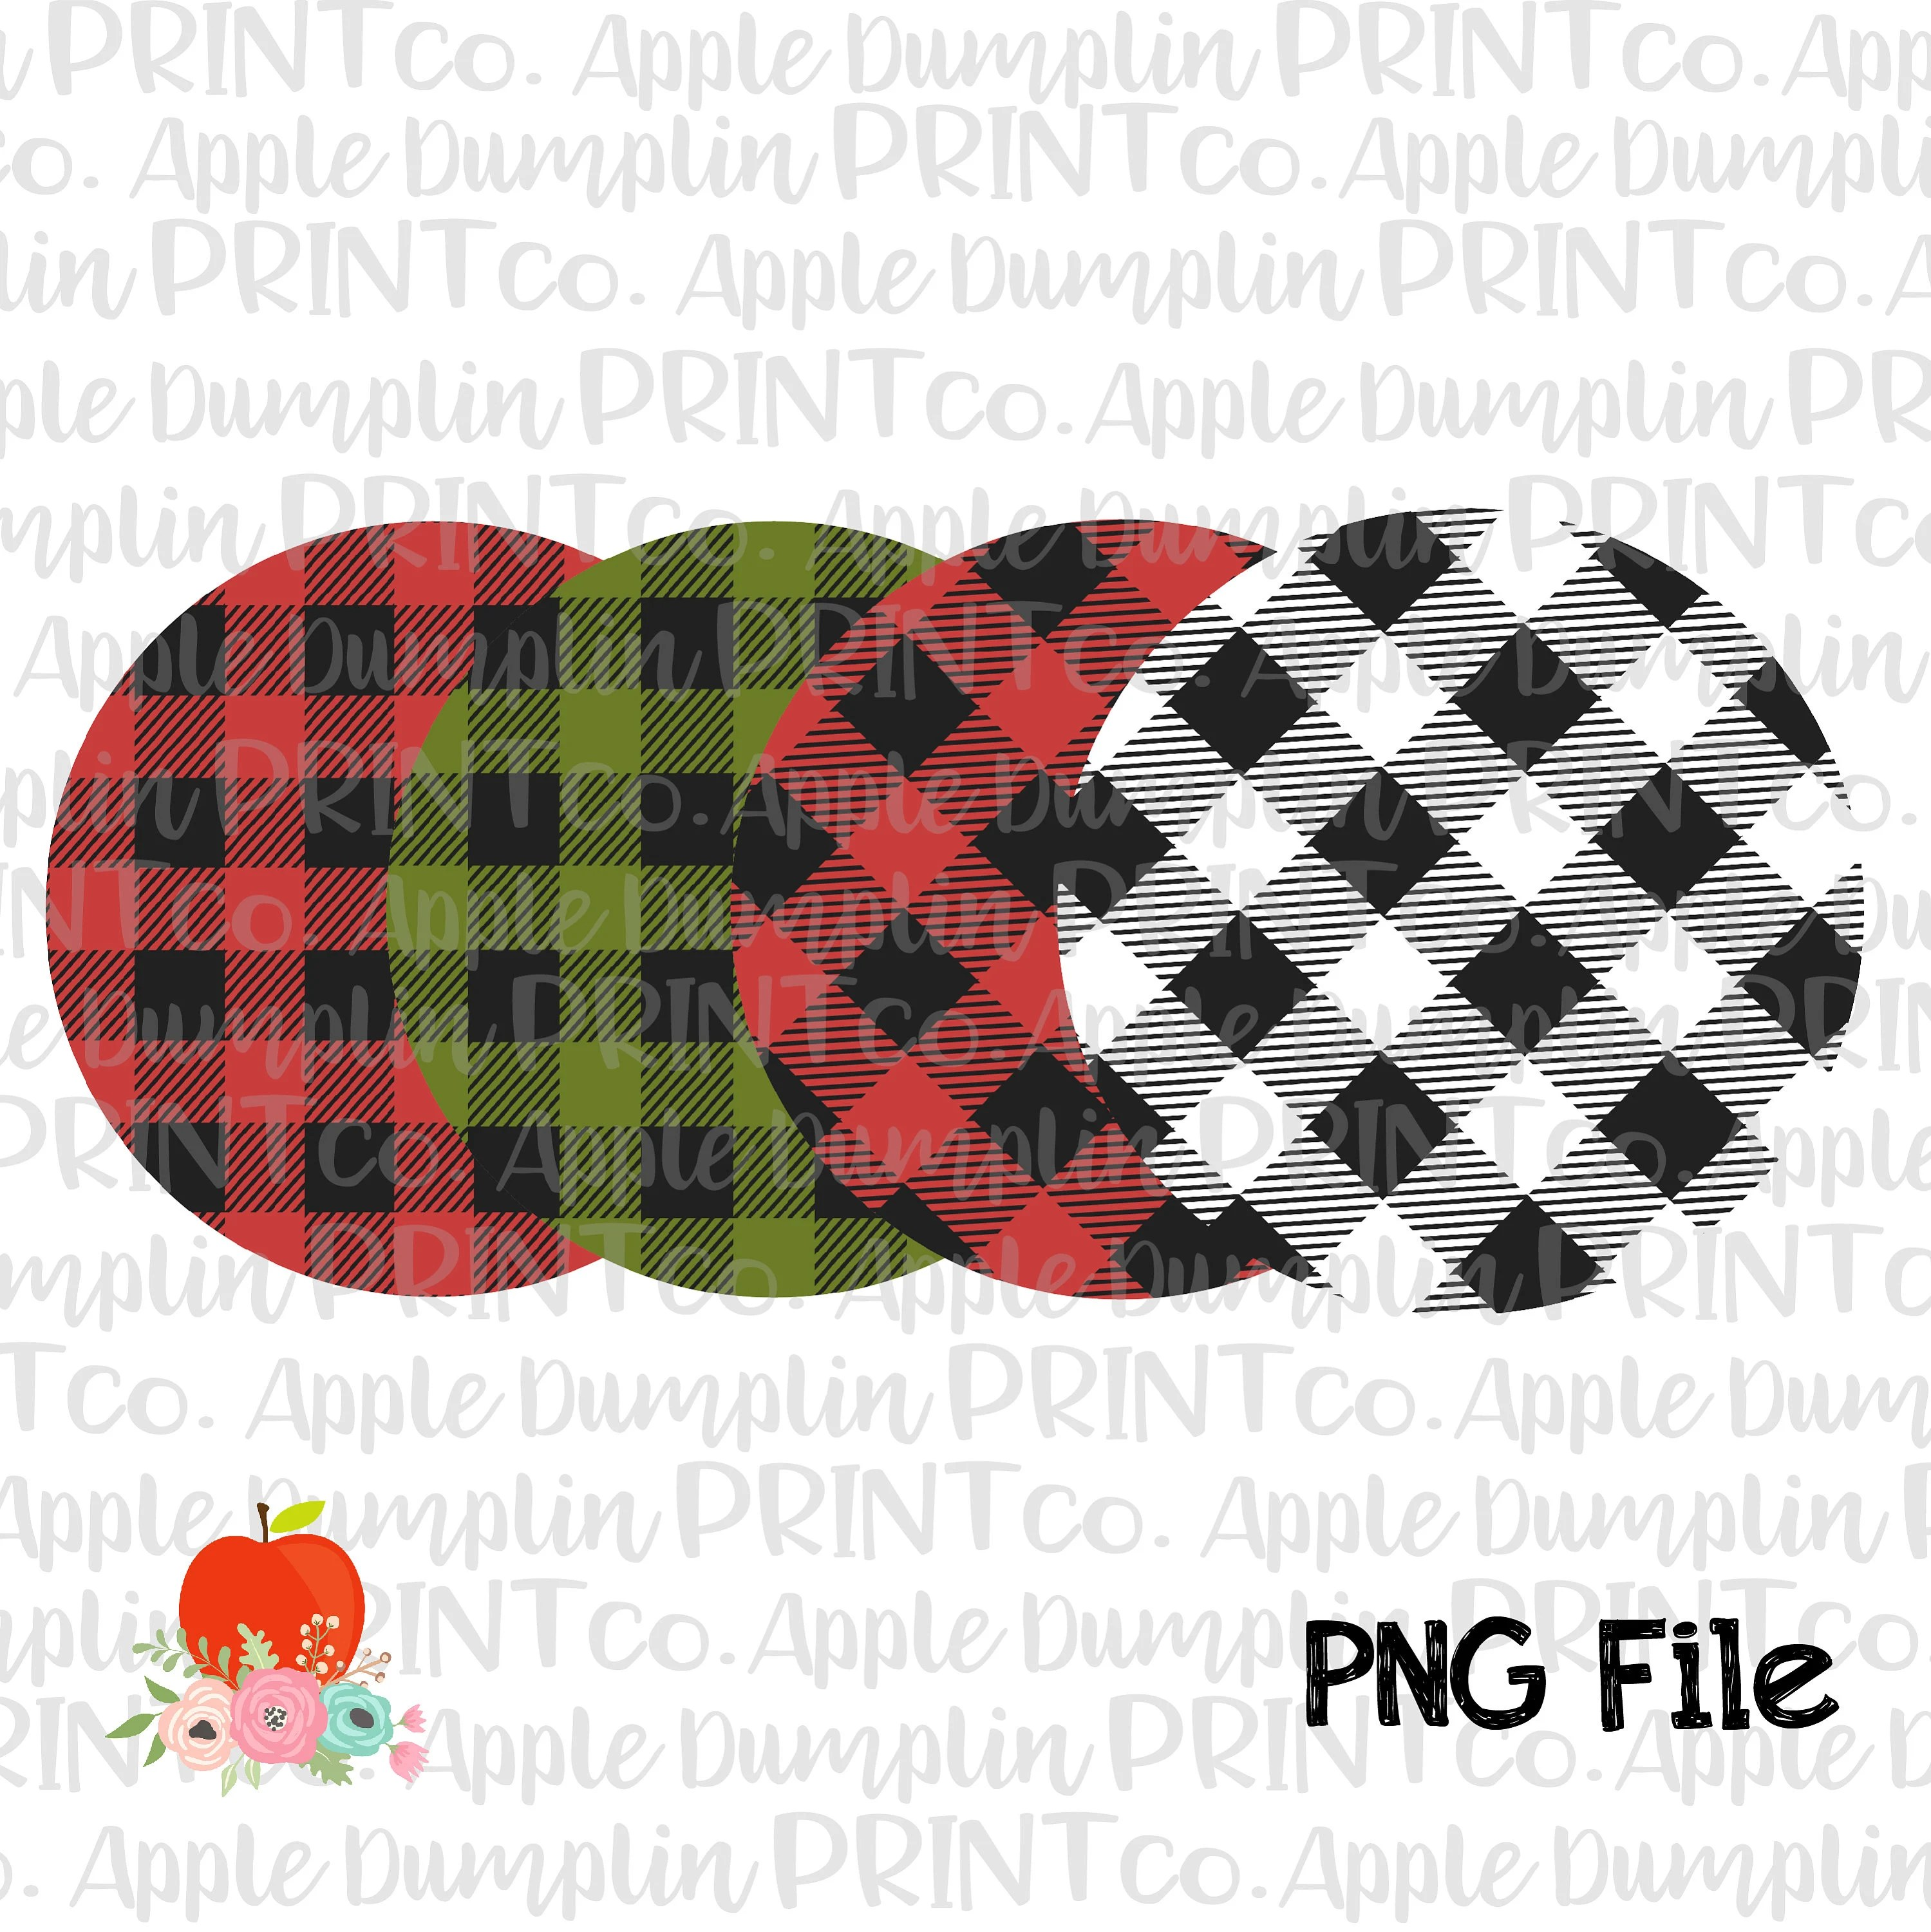 Plaid Lin Buffalo Plaid Backgrounds Png Sublimation Design Print At Home Design Clipart For Printing And Other Crafts